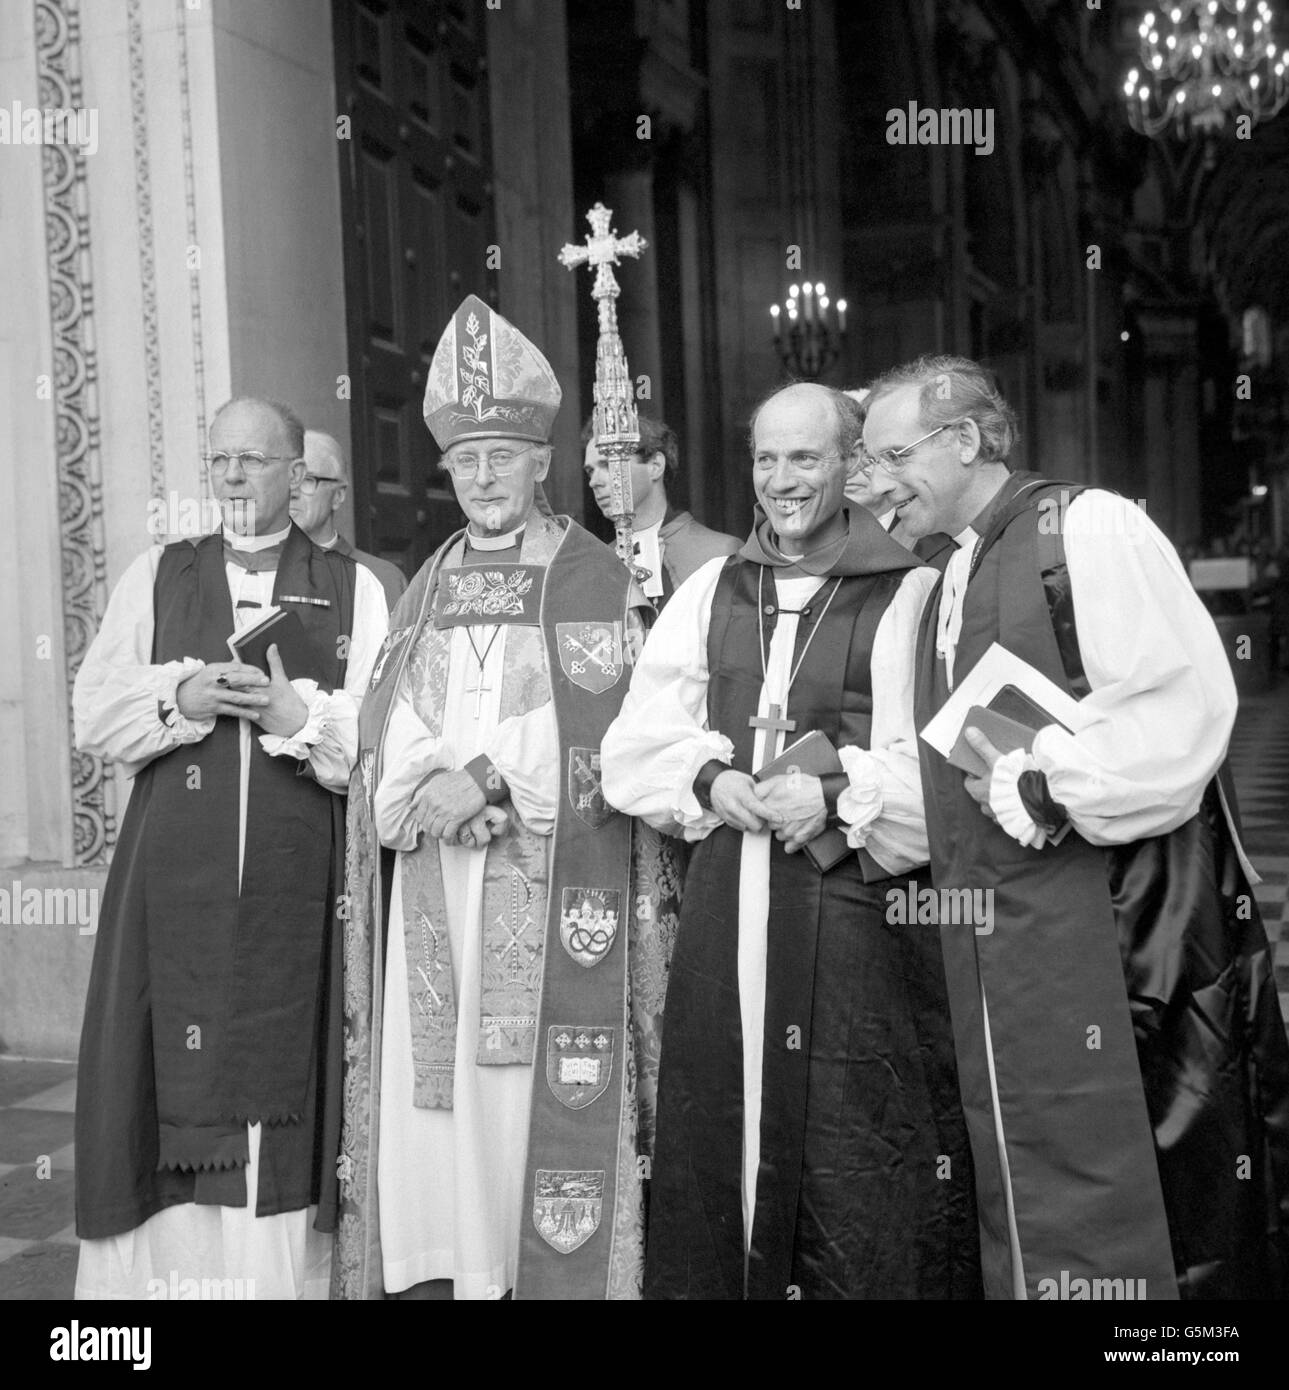 Religion - Rt Rev Peter Ball - Consecrated at St Paul's Cathedral - London Stock Photo